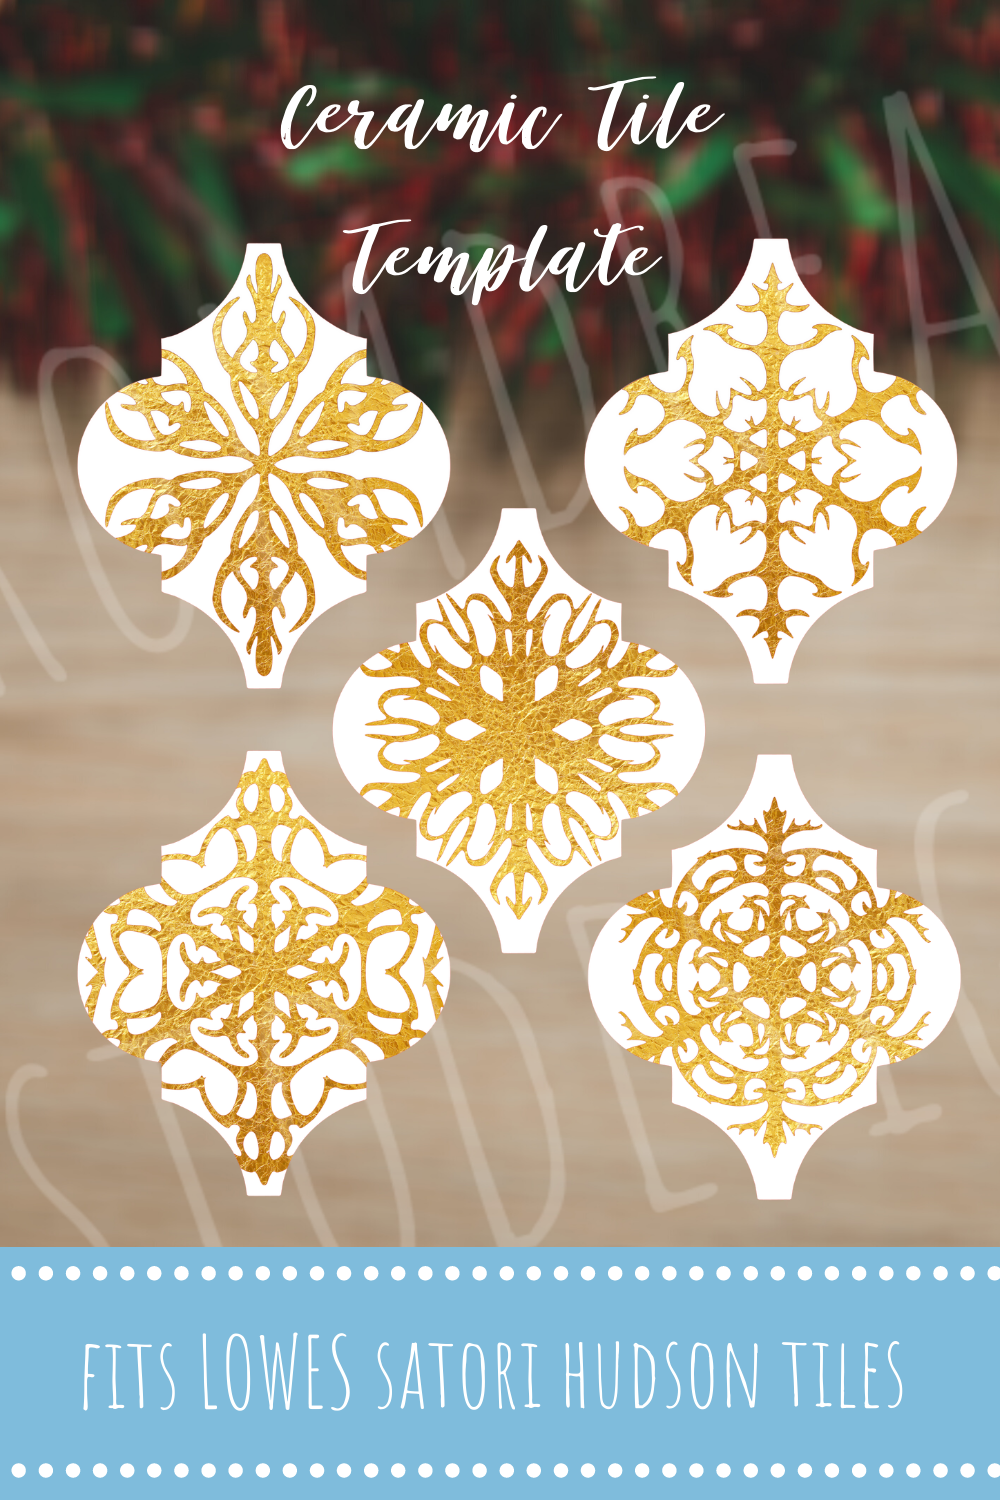 Lowes Tile Ornament Template Svg Lowes Ornament Svg Etsy Christmas Vinyl Projects Ceramic Tile Crafts Painted Christmas Ornaments